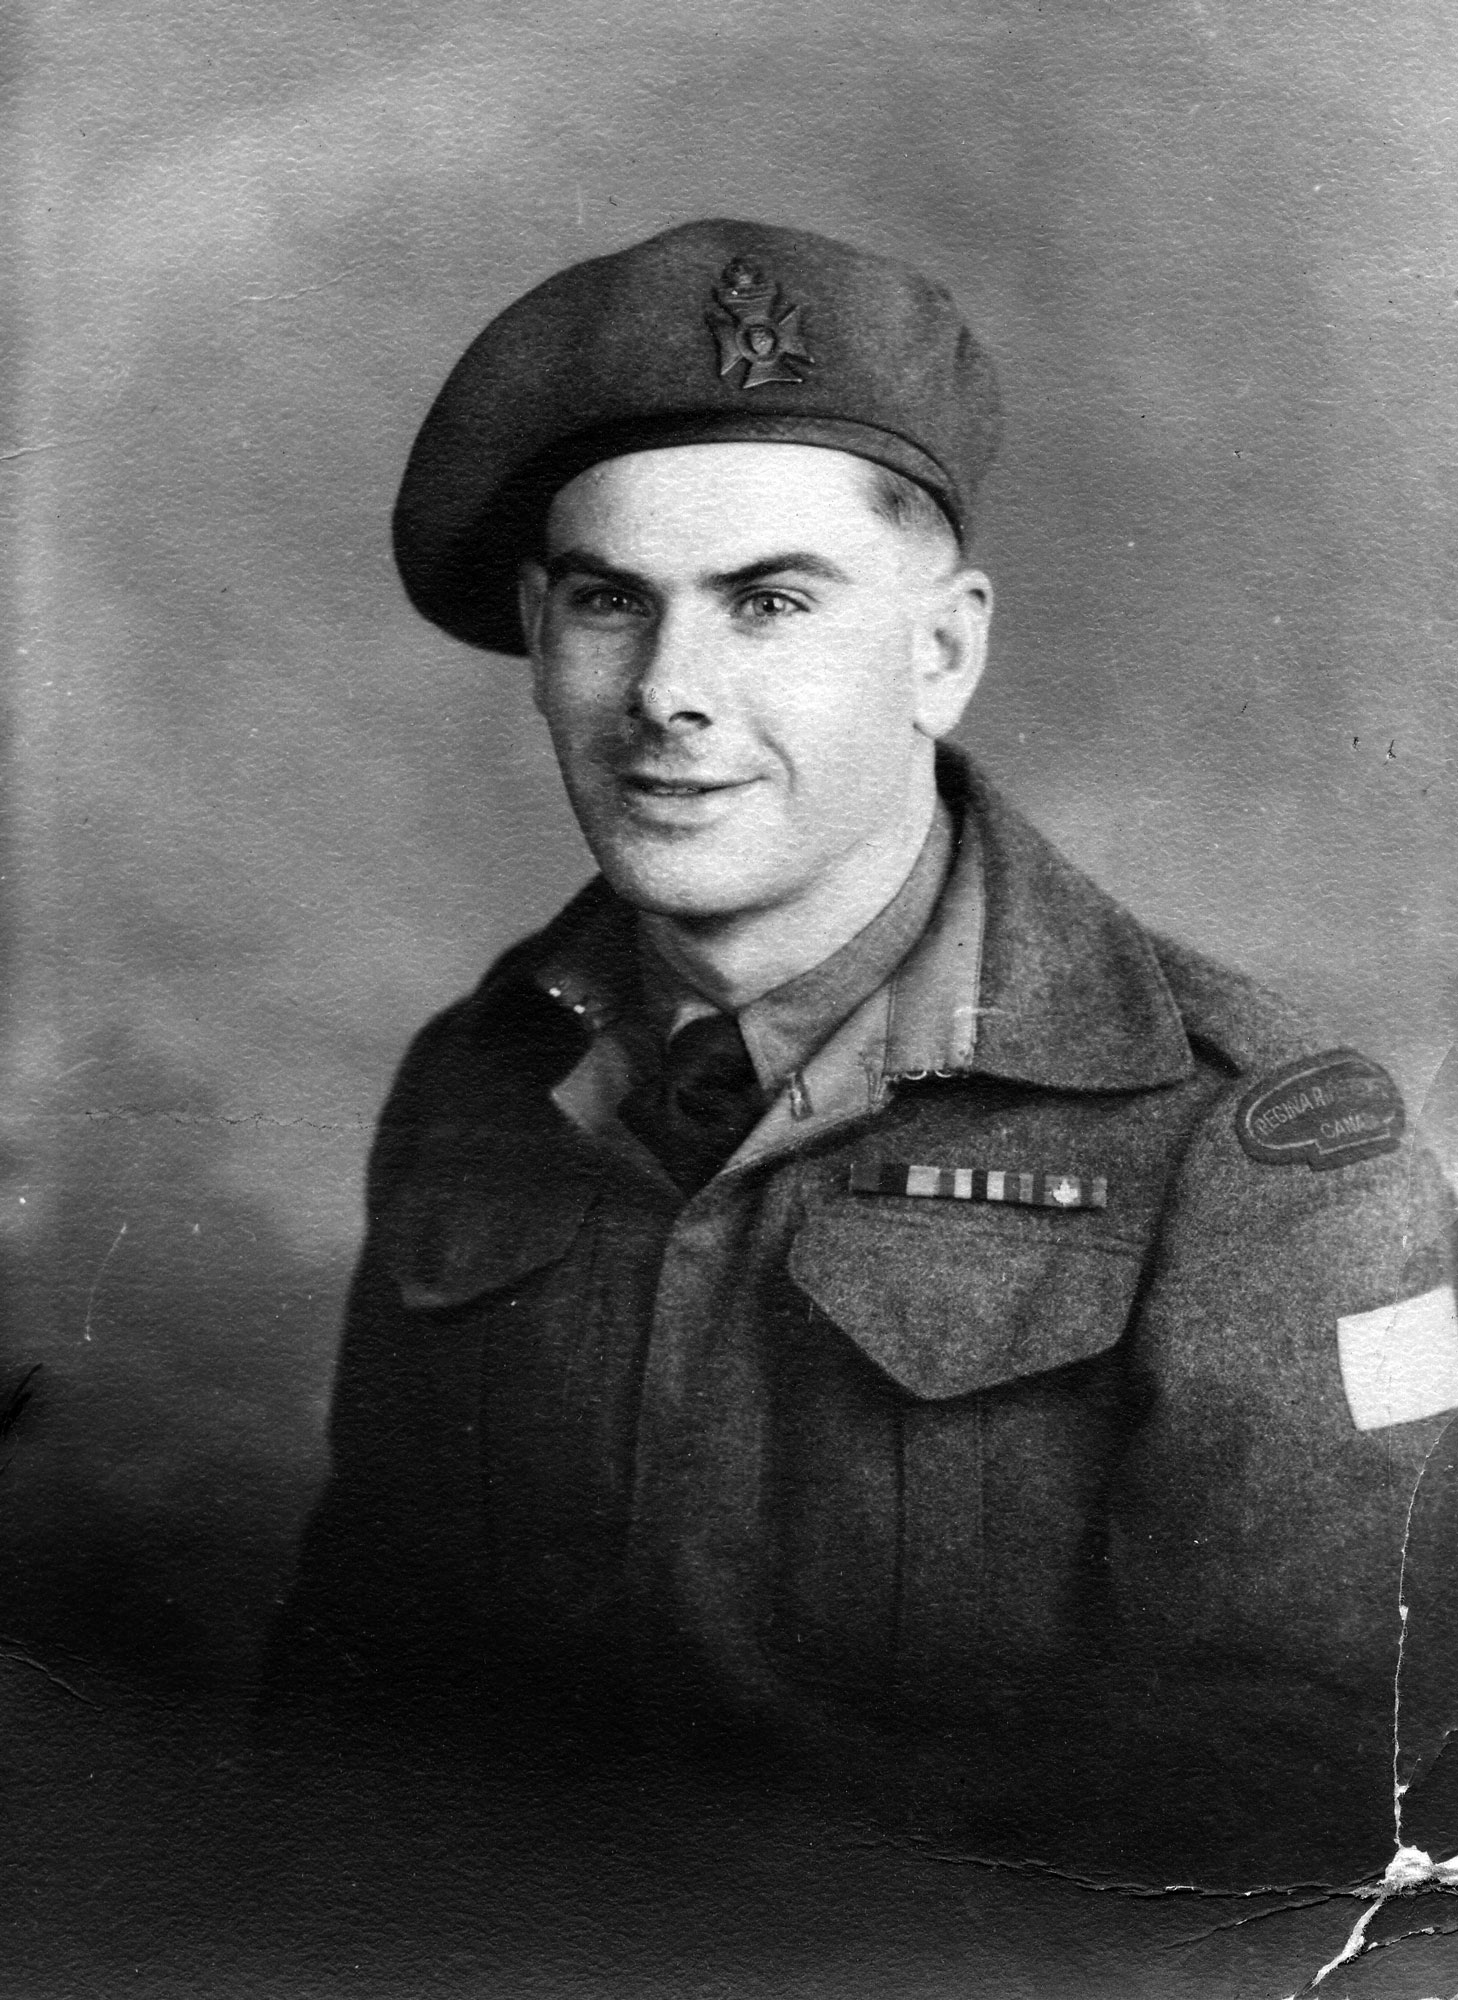 Photo of Arnott England after D-Day.